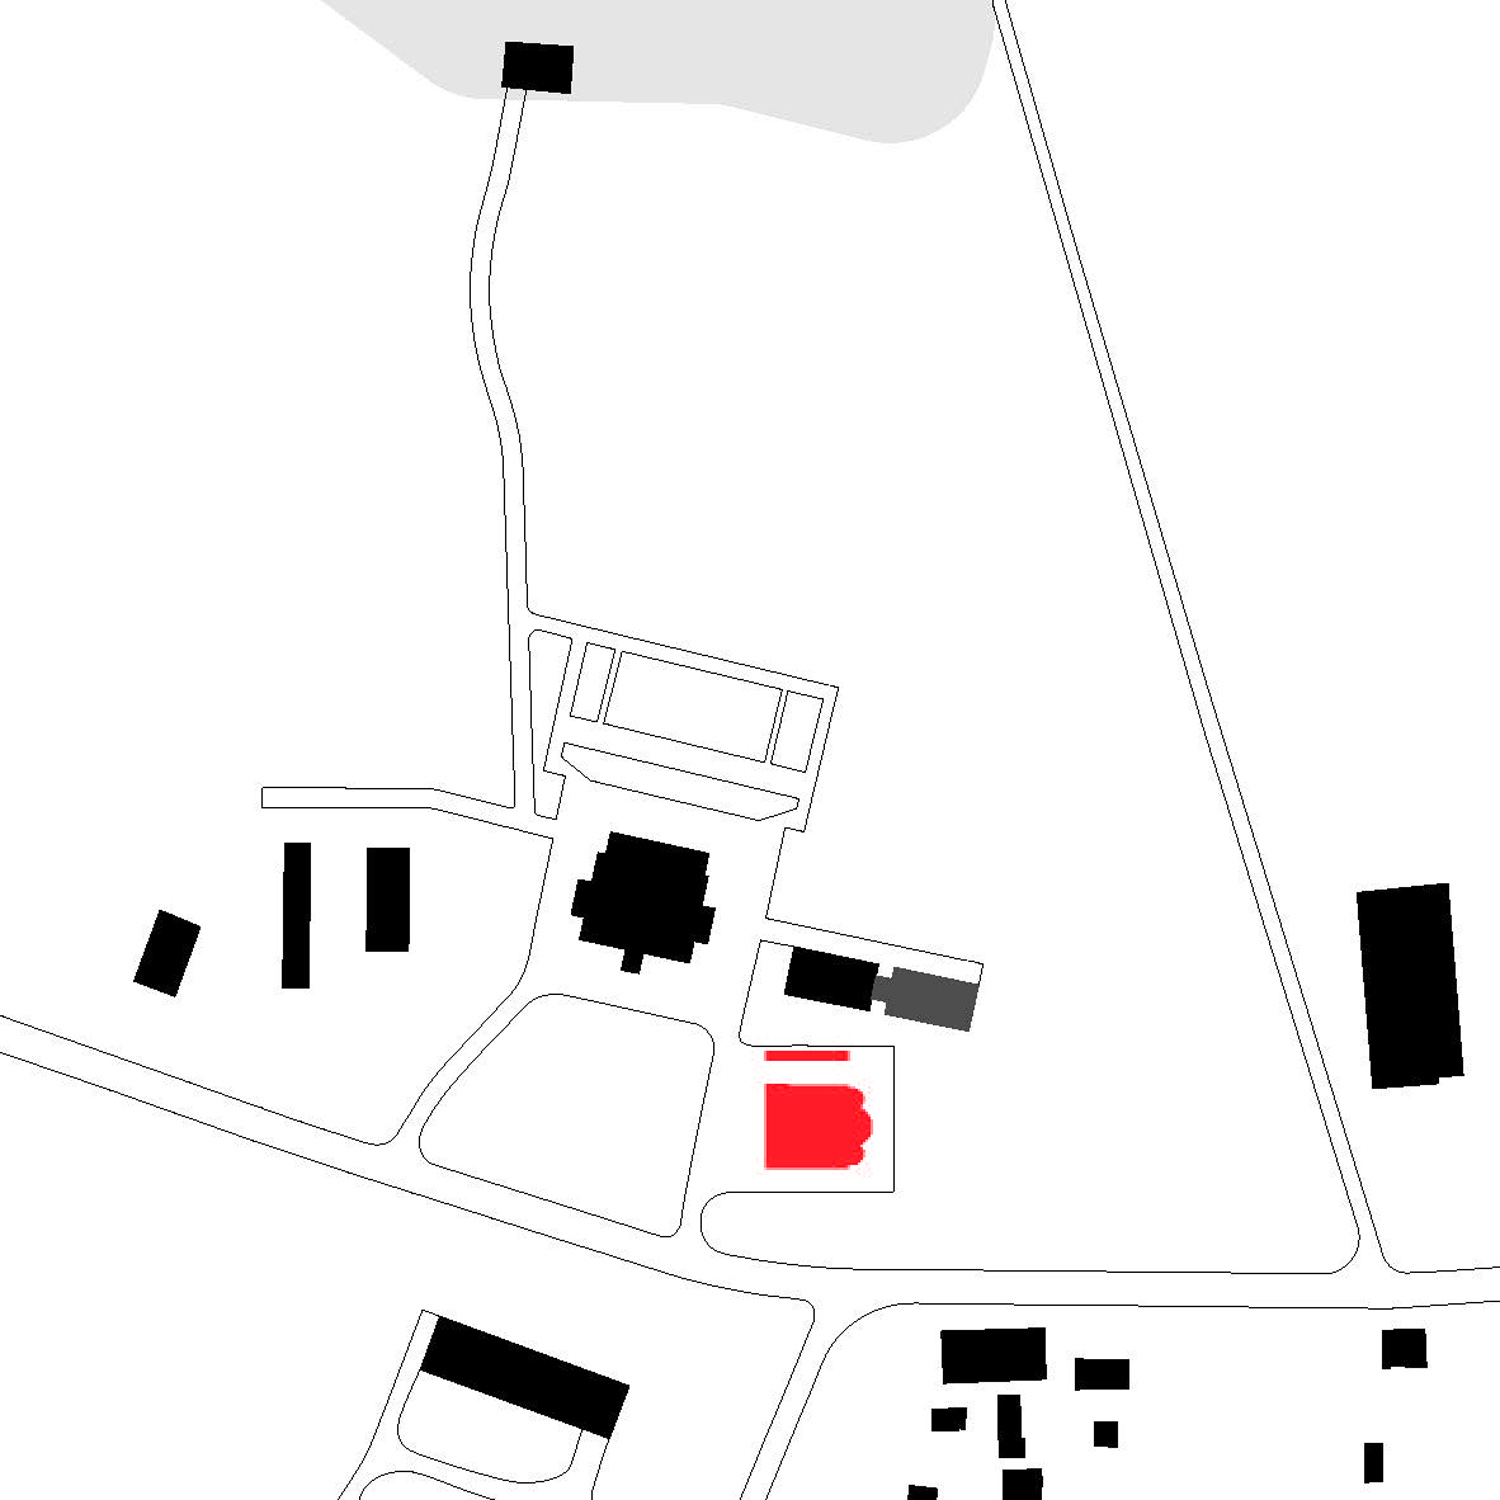 Site plan Tchoban Voss Architekten }